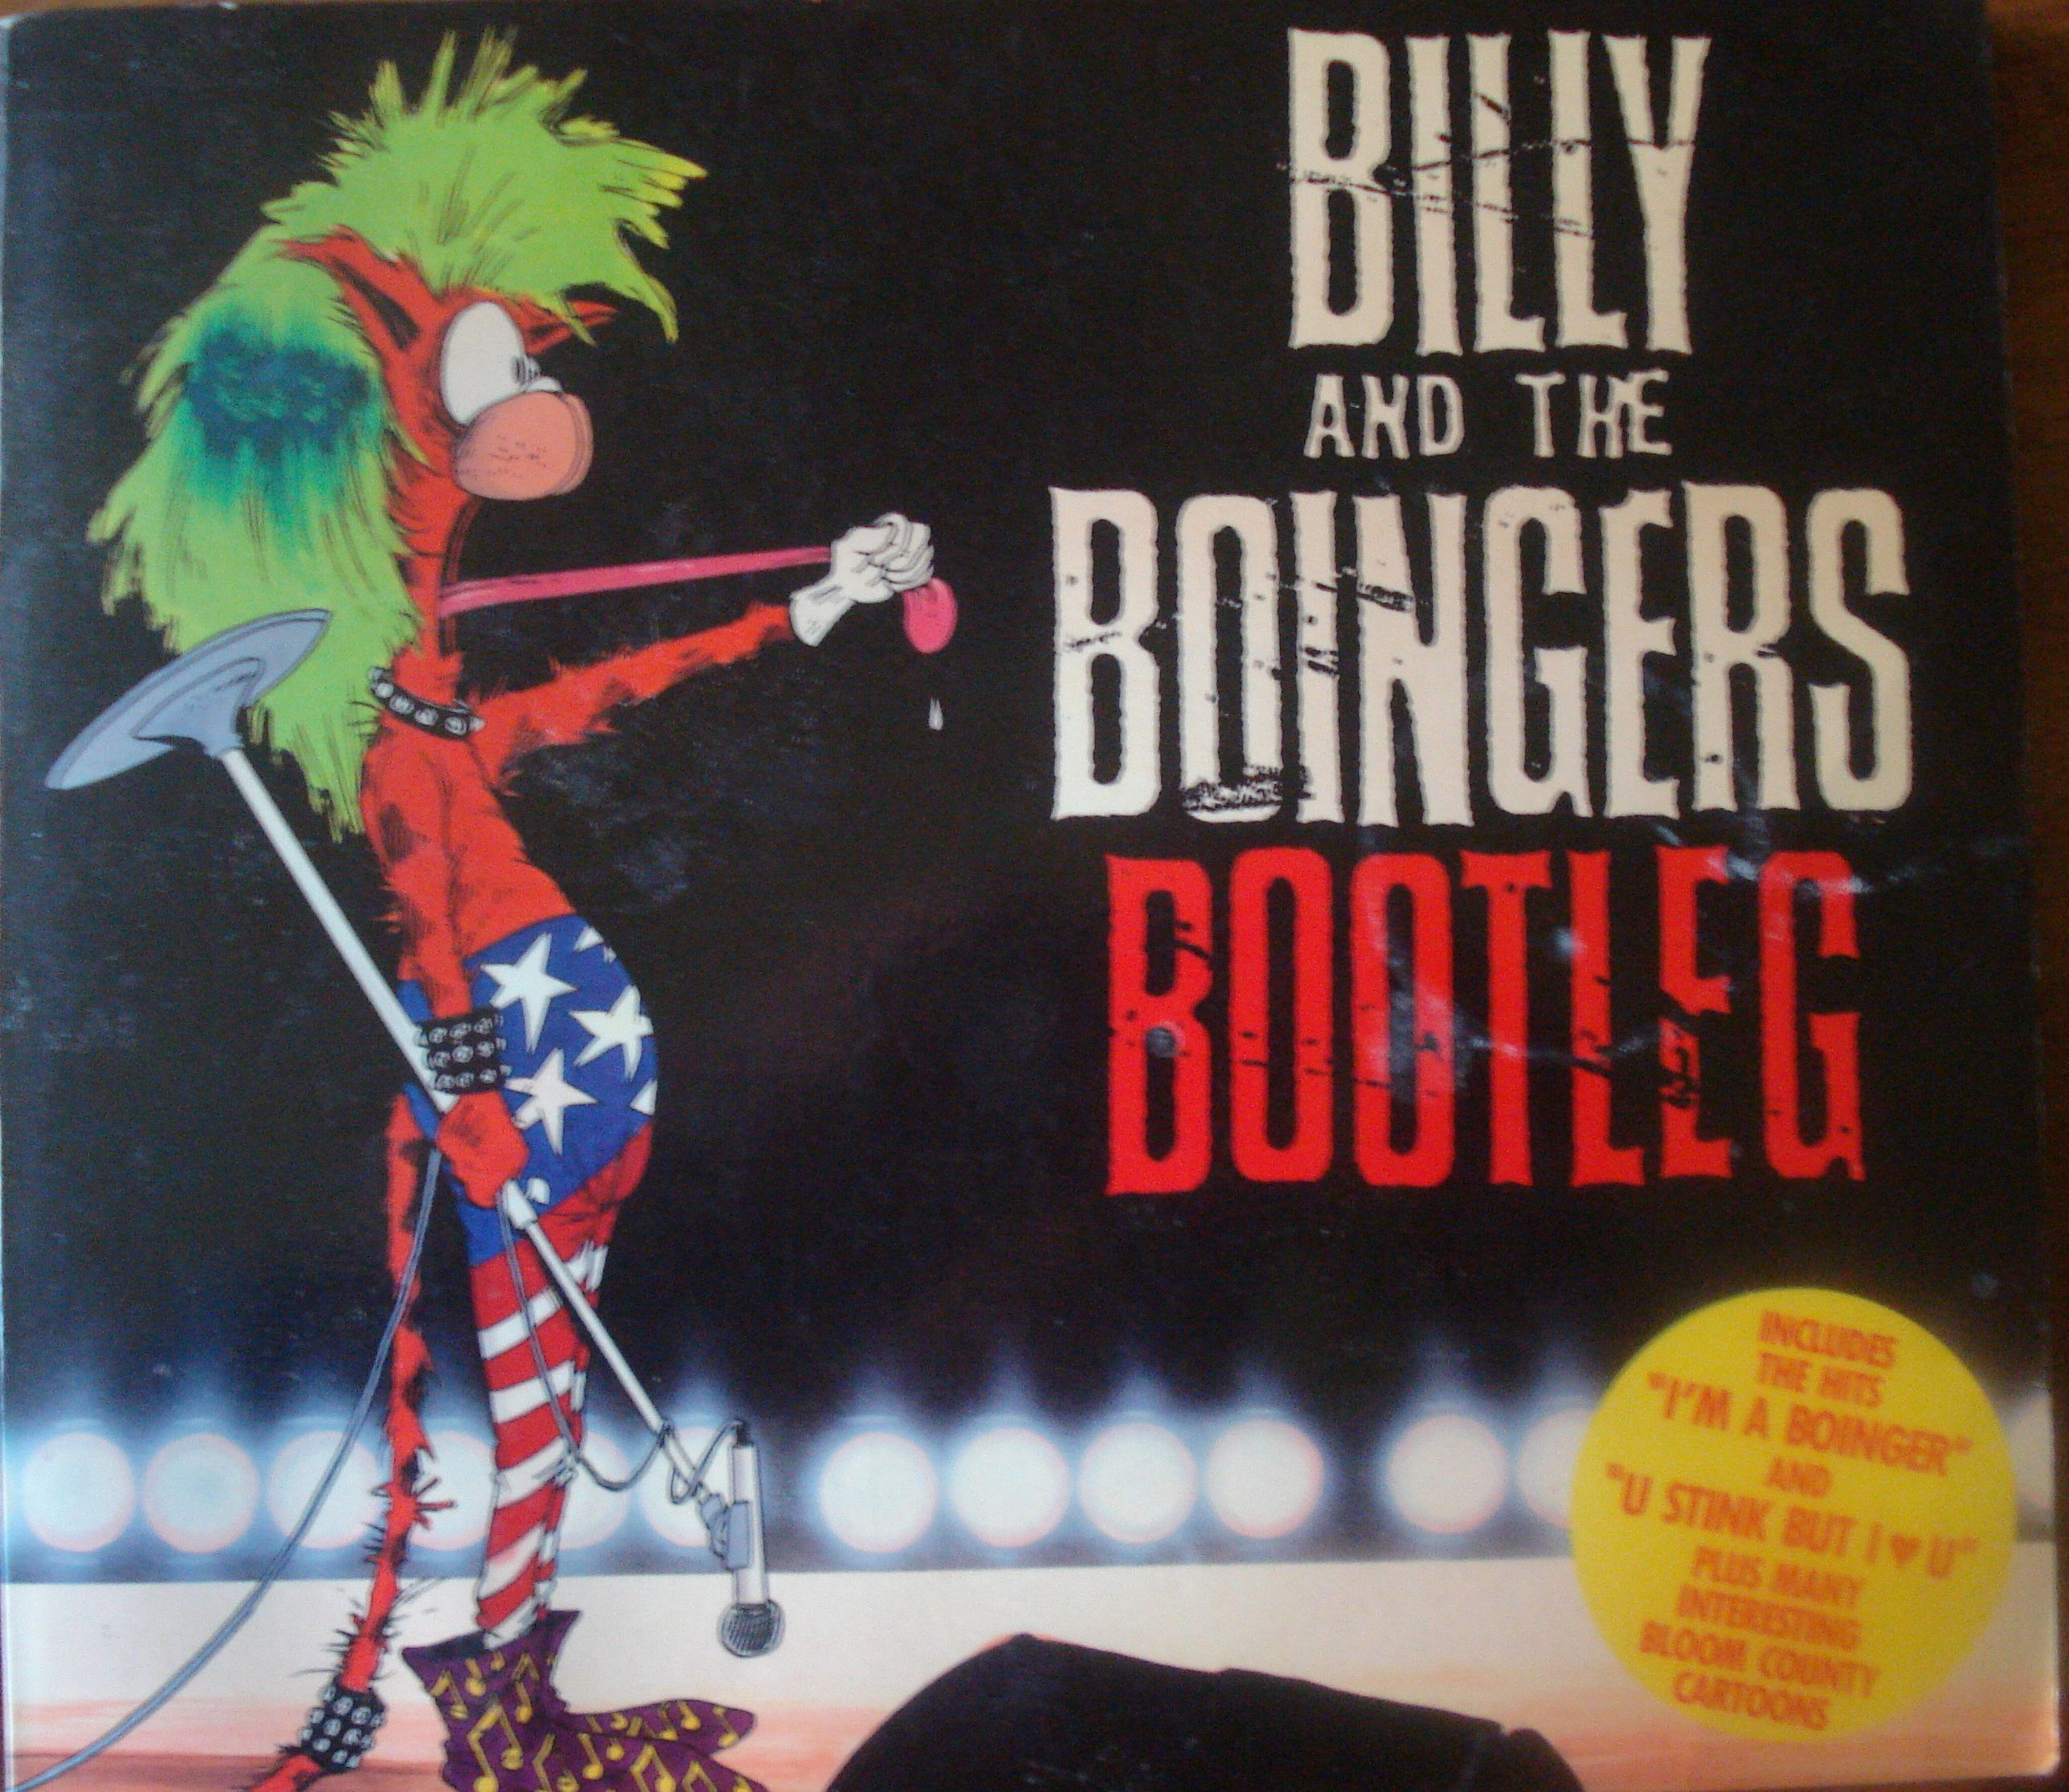 Billy And The Boingers - Bootleg